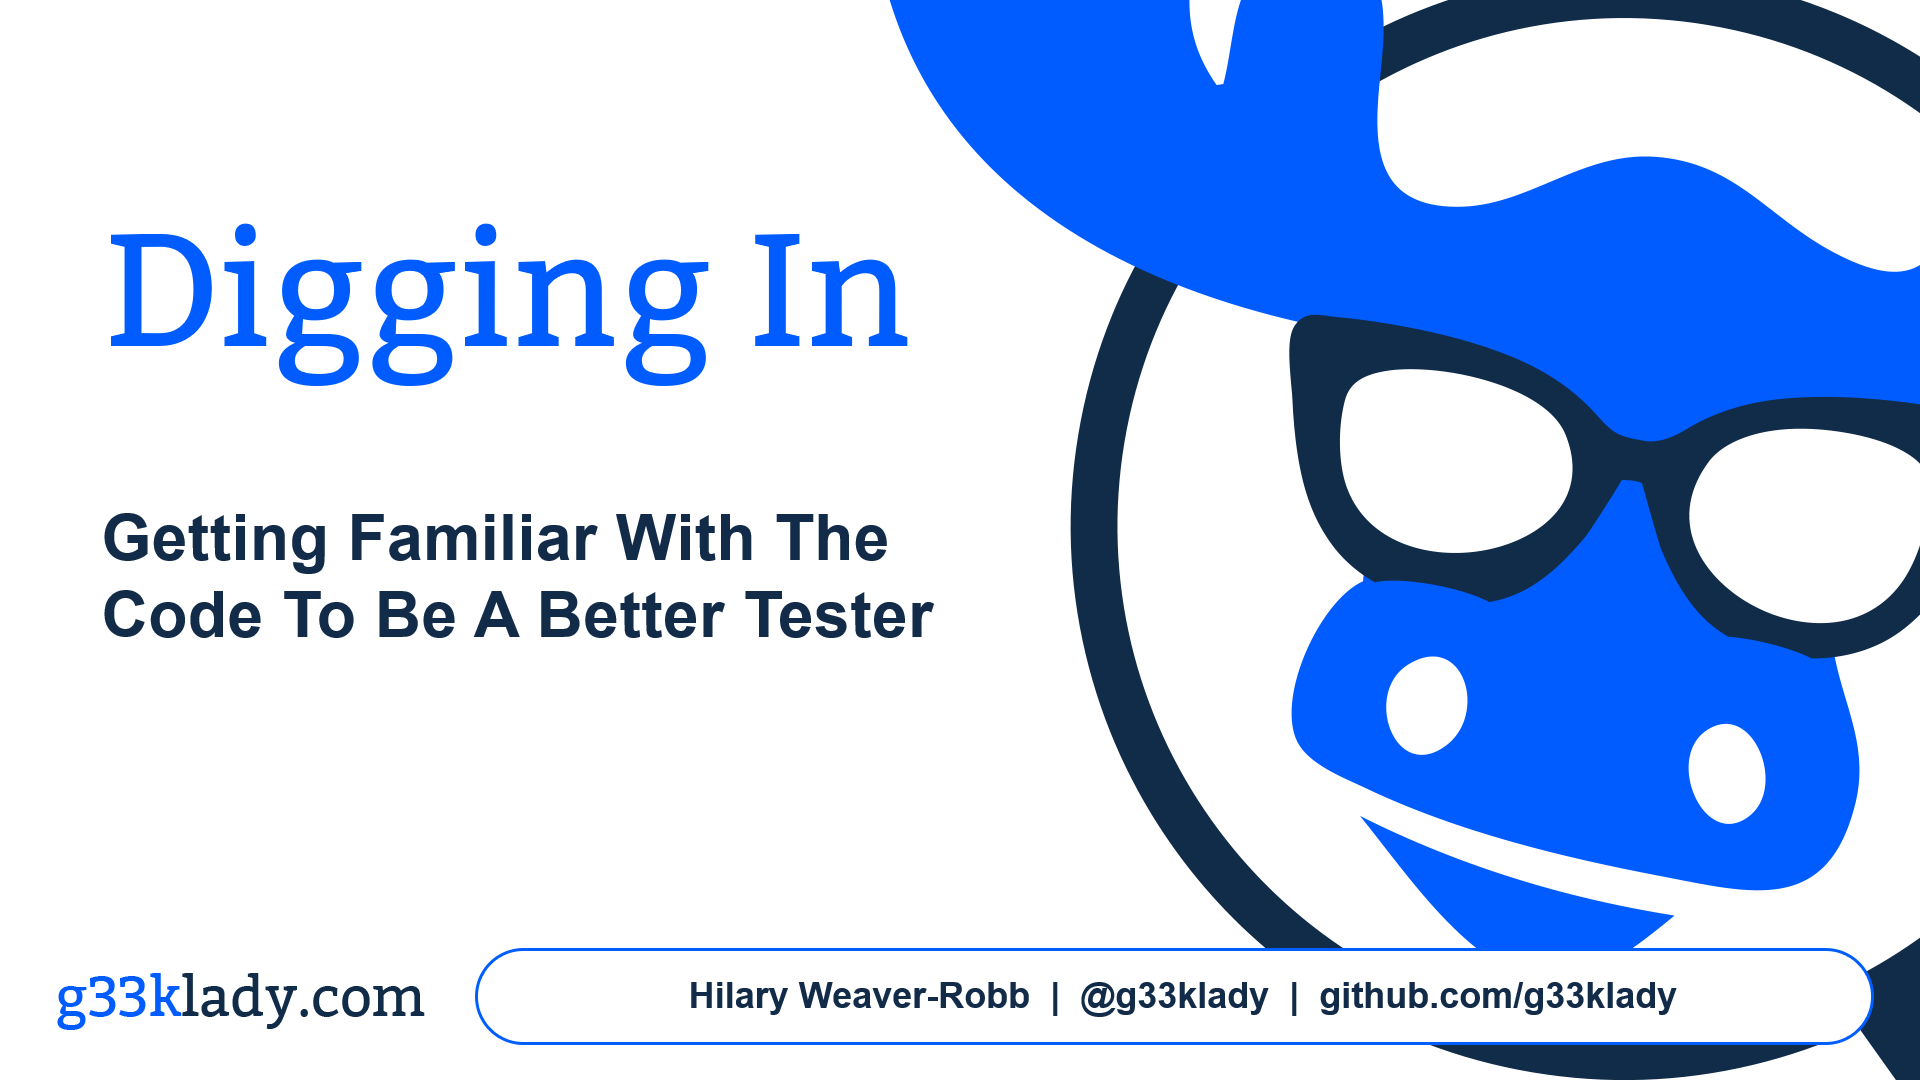 Digging In: Getting Familiar with Code to be a Better Tester - Hilary Weaver-Robb